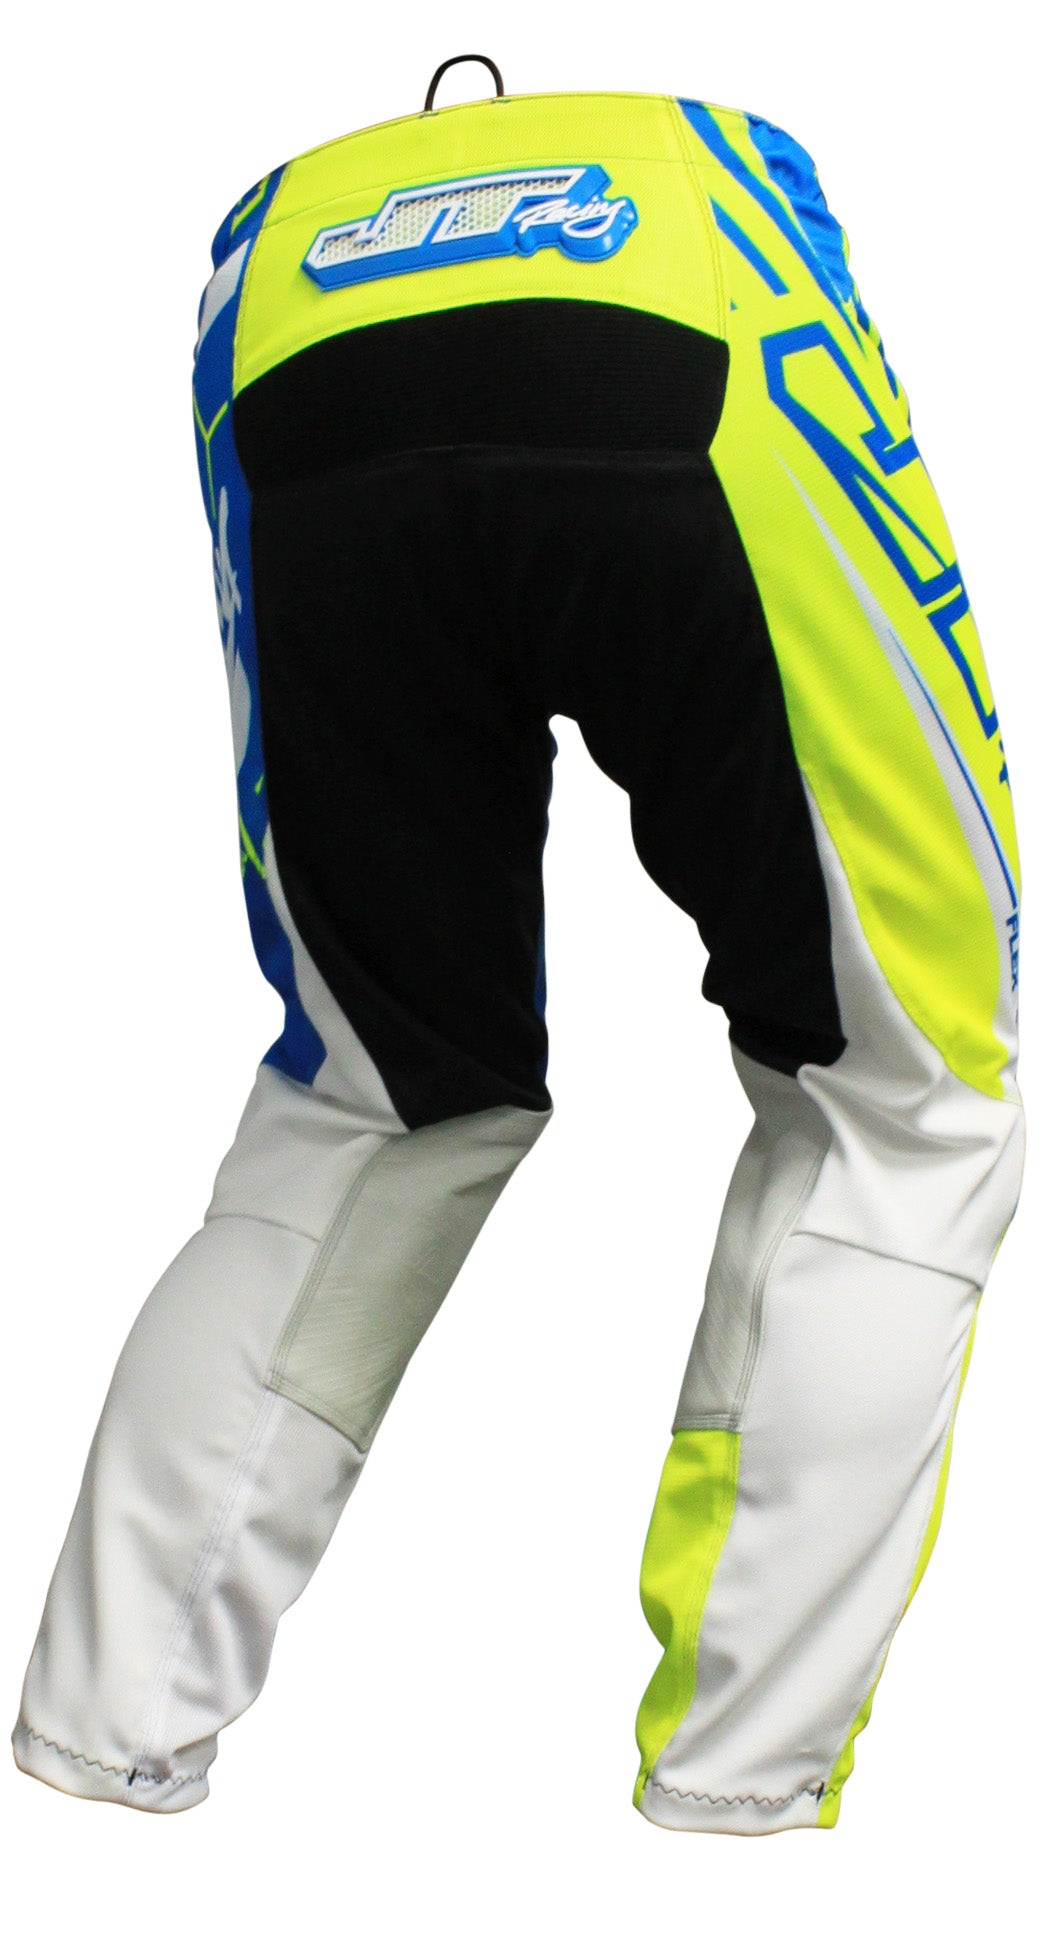 JT RACING USA  Flex-Victory Pants, Neon Yellow/Cyan (Vented)